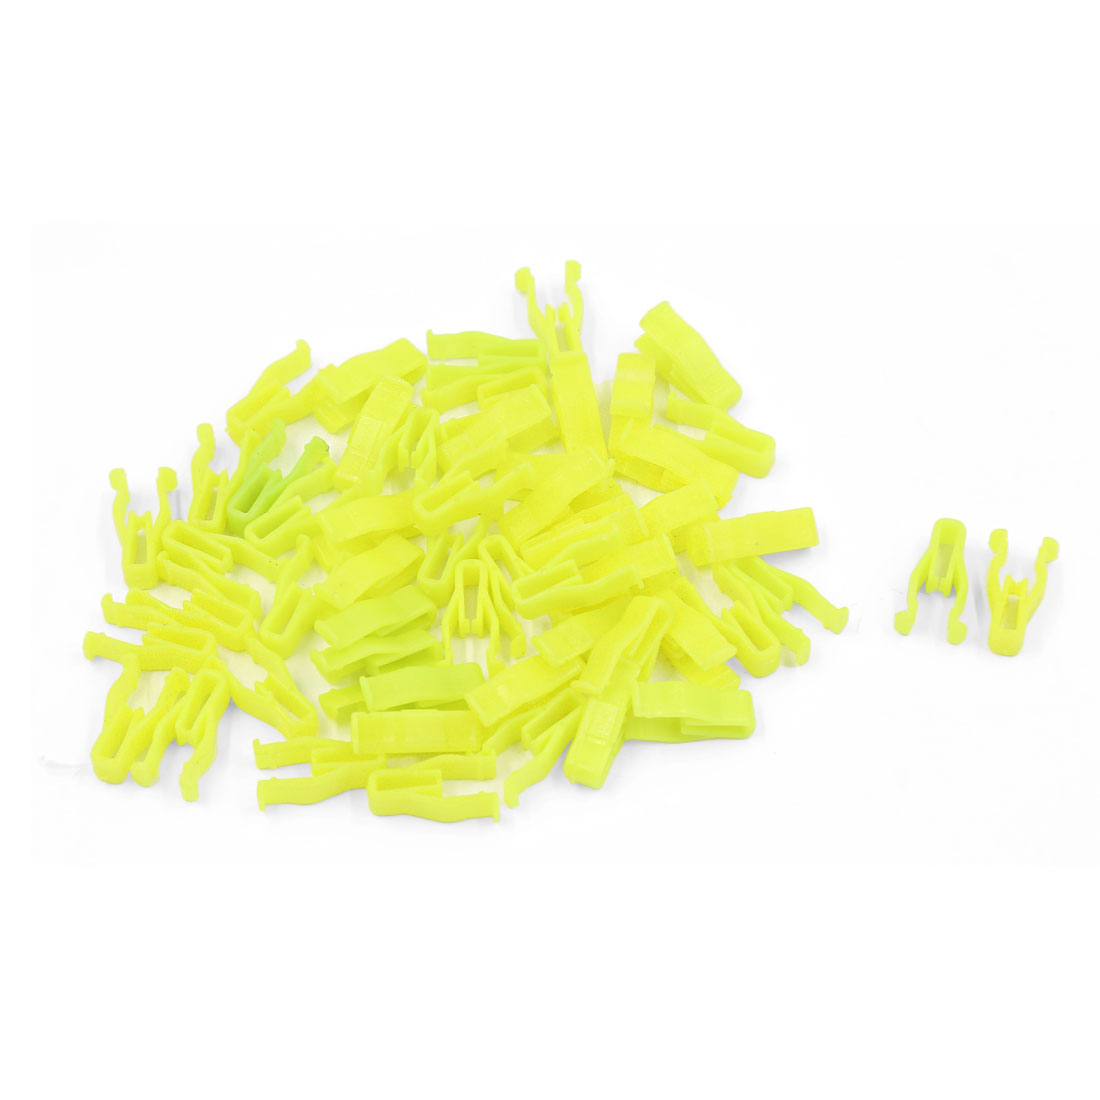 50 Pcs Yellow Car Instrument Panel Plastic Rivet Auto Trunk Fastener Clip 7mm